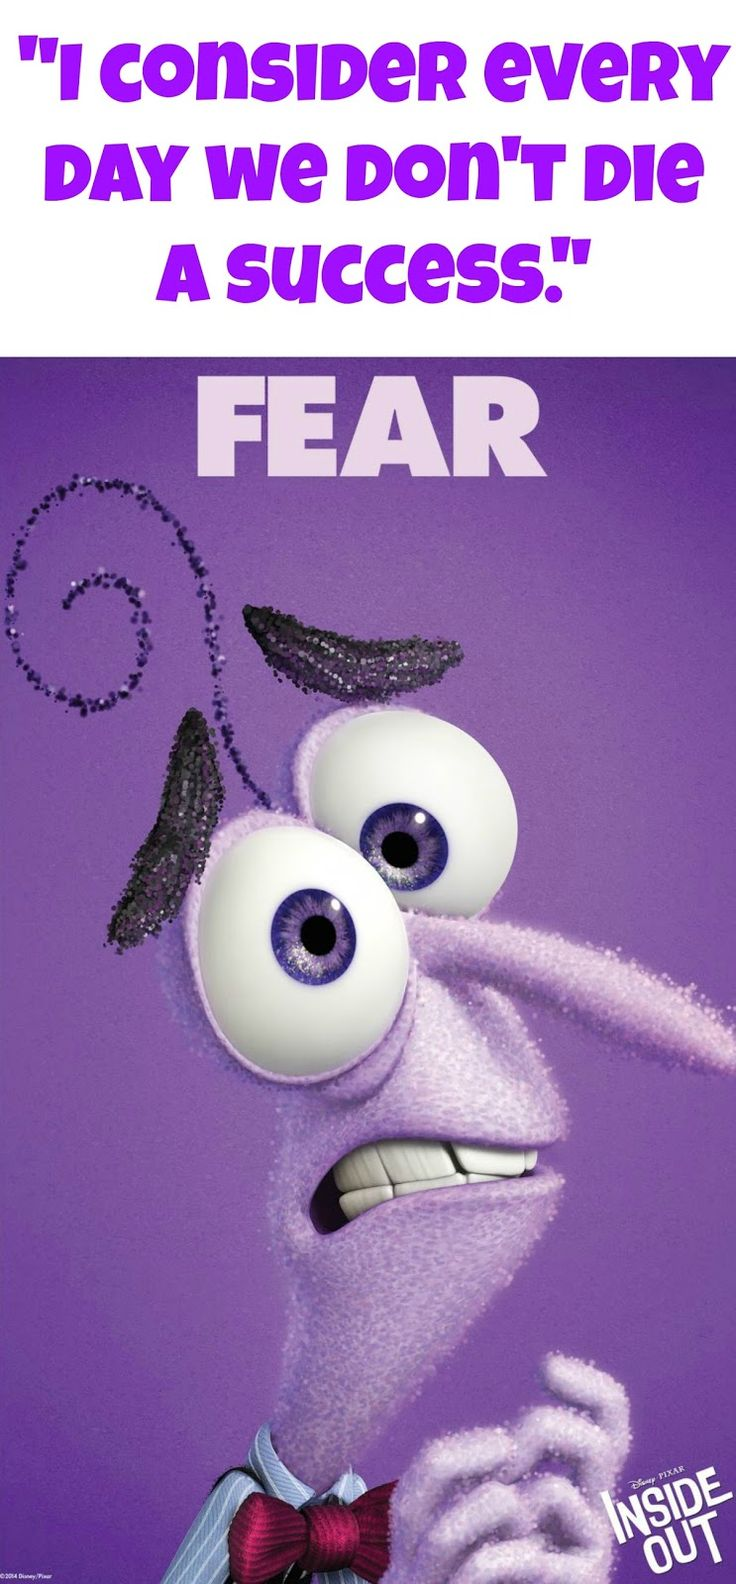 Inside Out Pixar Sadness Quotes Quotesgram: Anger Inside Out Quotes - Google Search